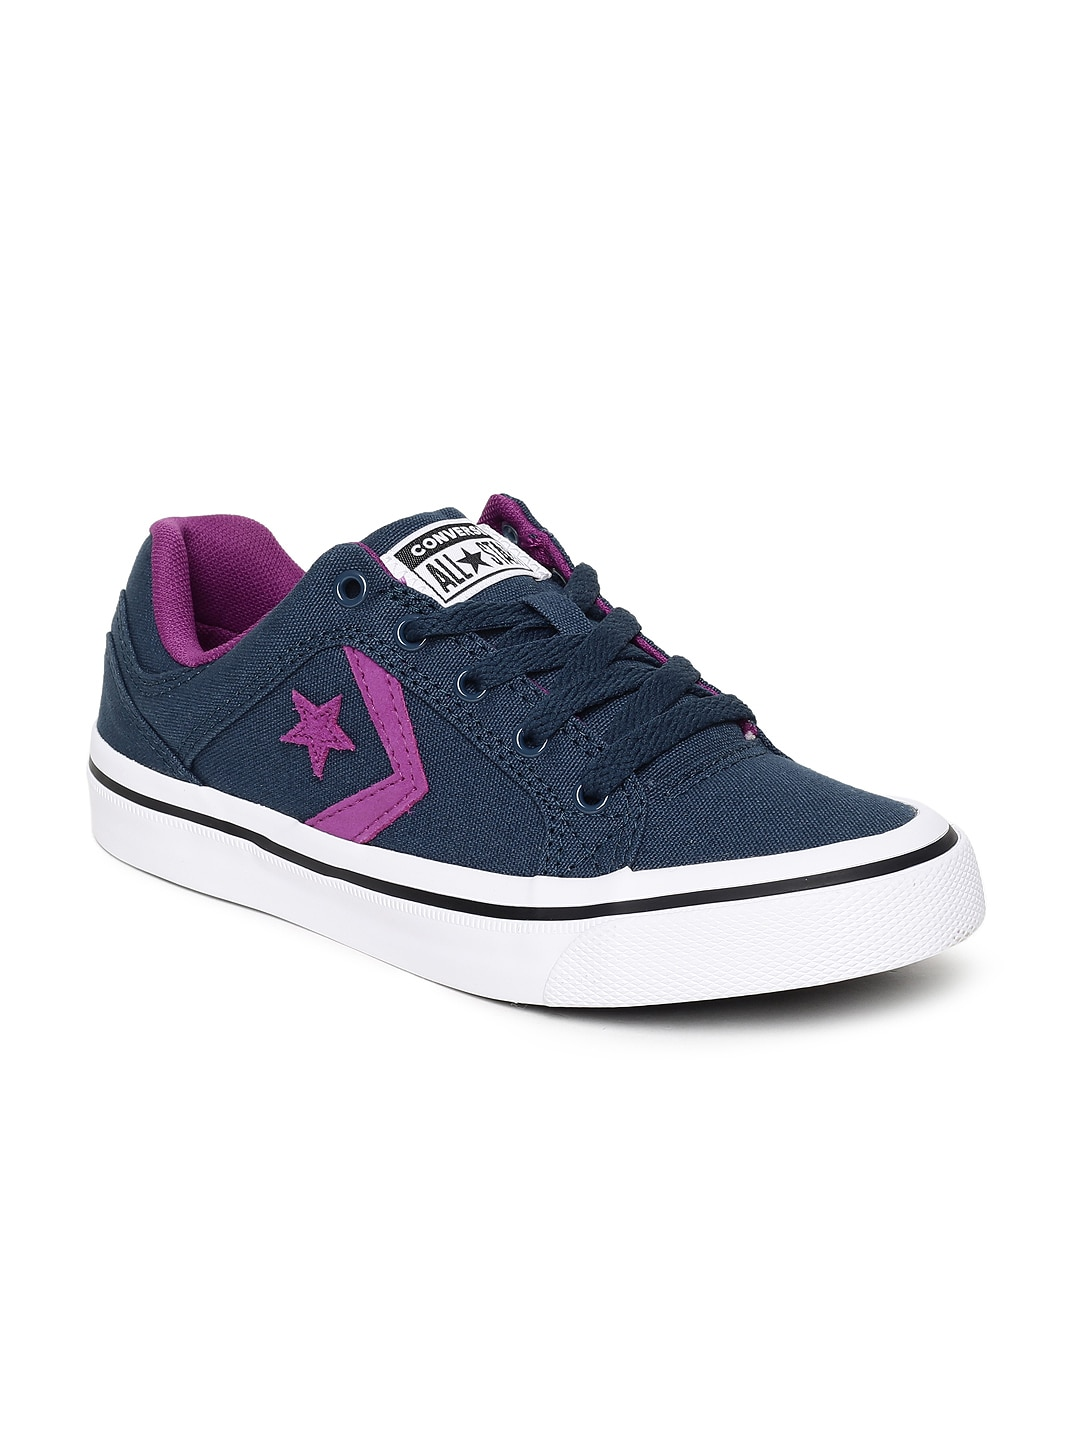 a17b0a4aa73b Converse Shoes - Buy Converse Canvas Shoes   Sneakers Online